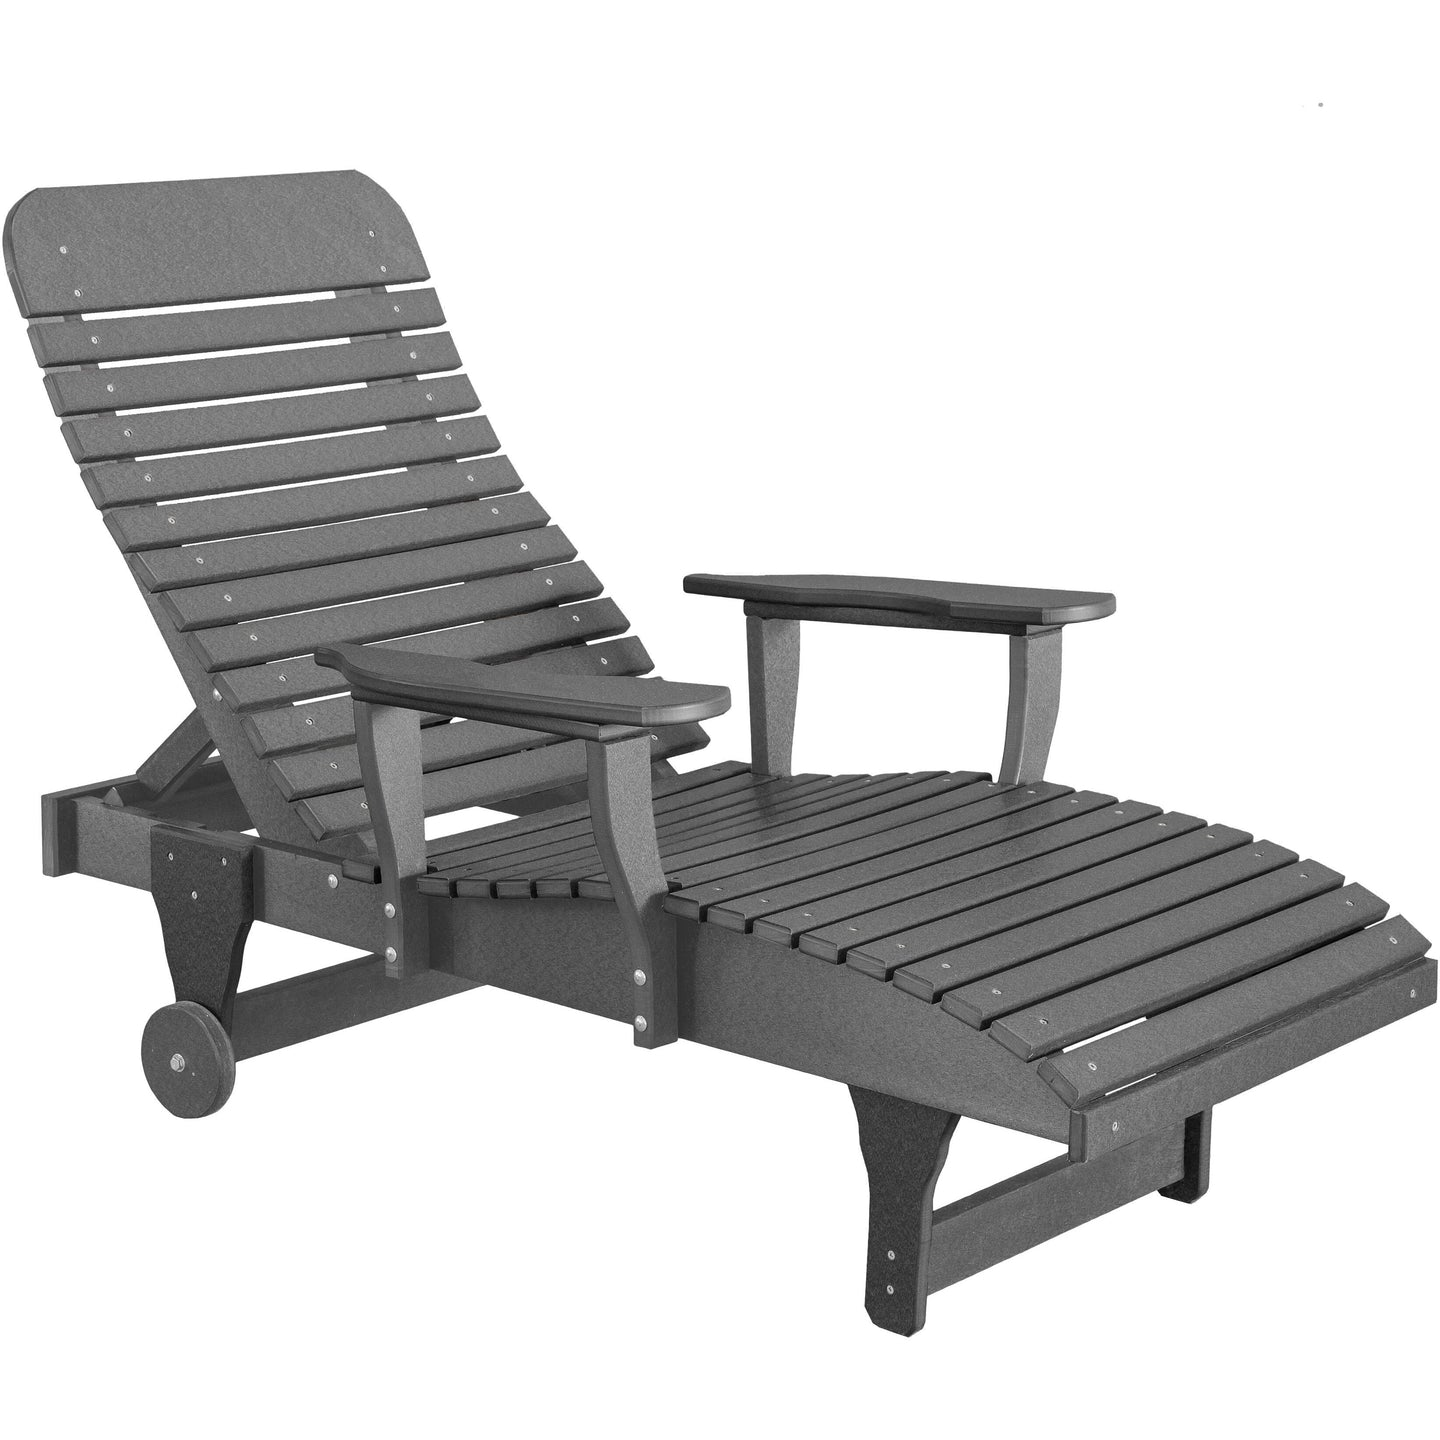 duraweather polywood grey adjustable chaise lounge with wheels